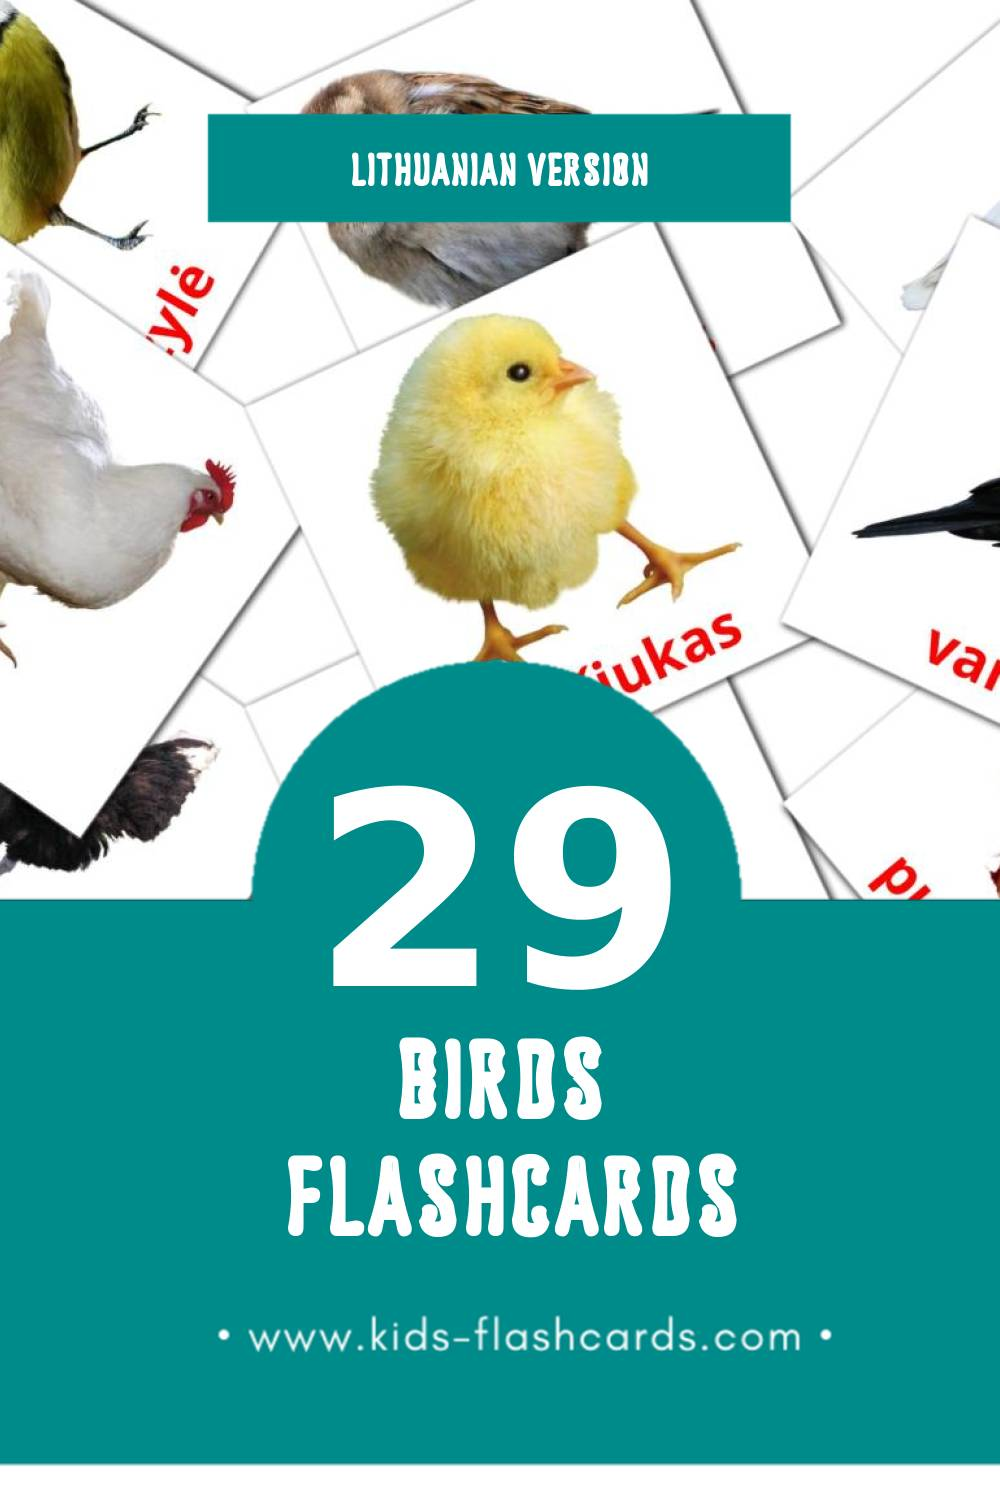 Visual Paukščiai Flashcards for Toddlers (28 cards in Lithuanian)